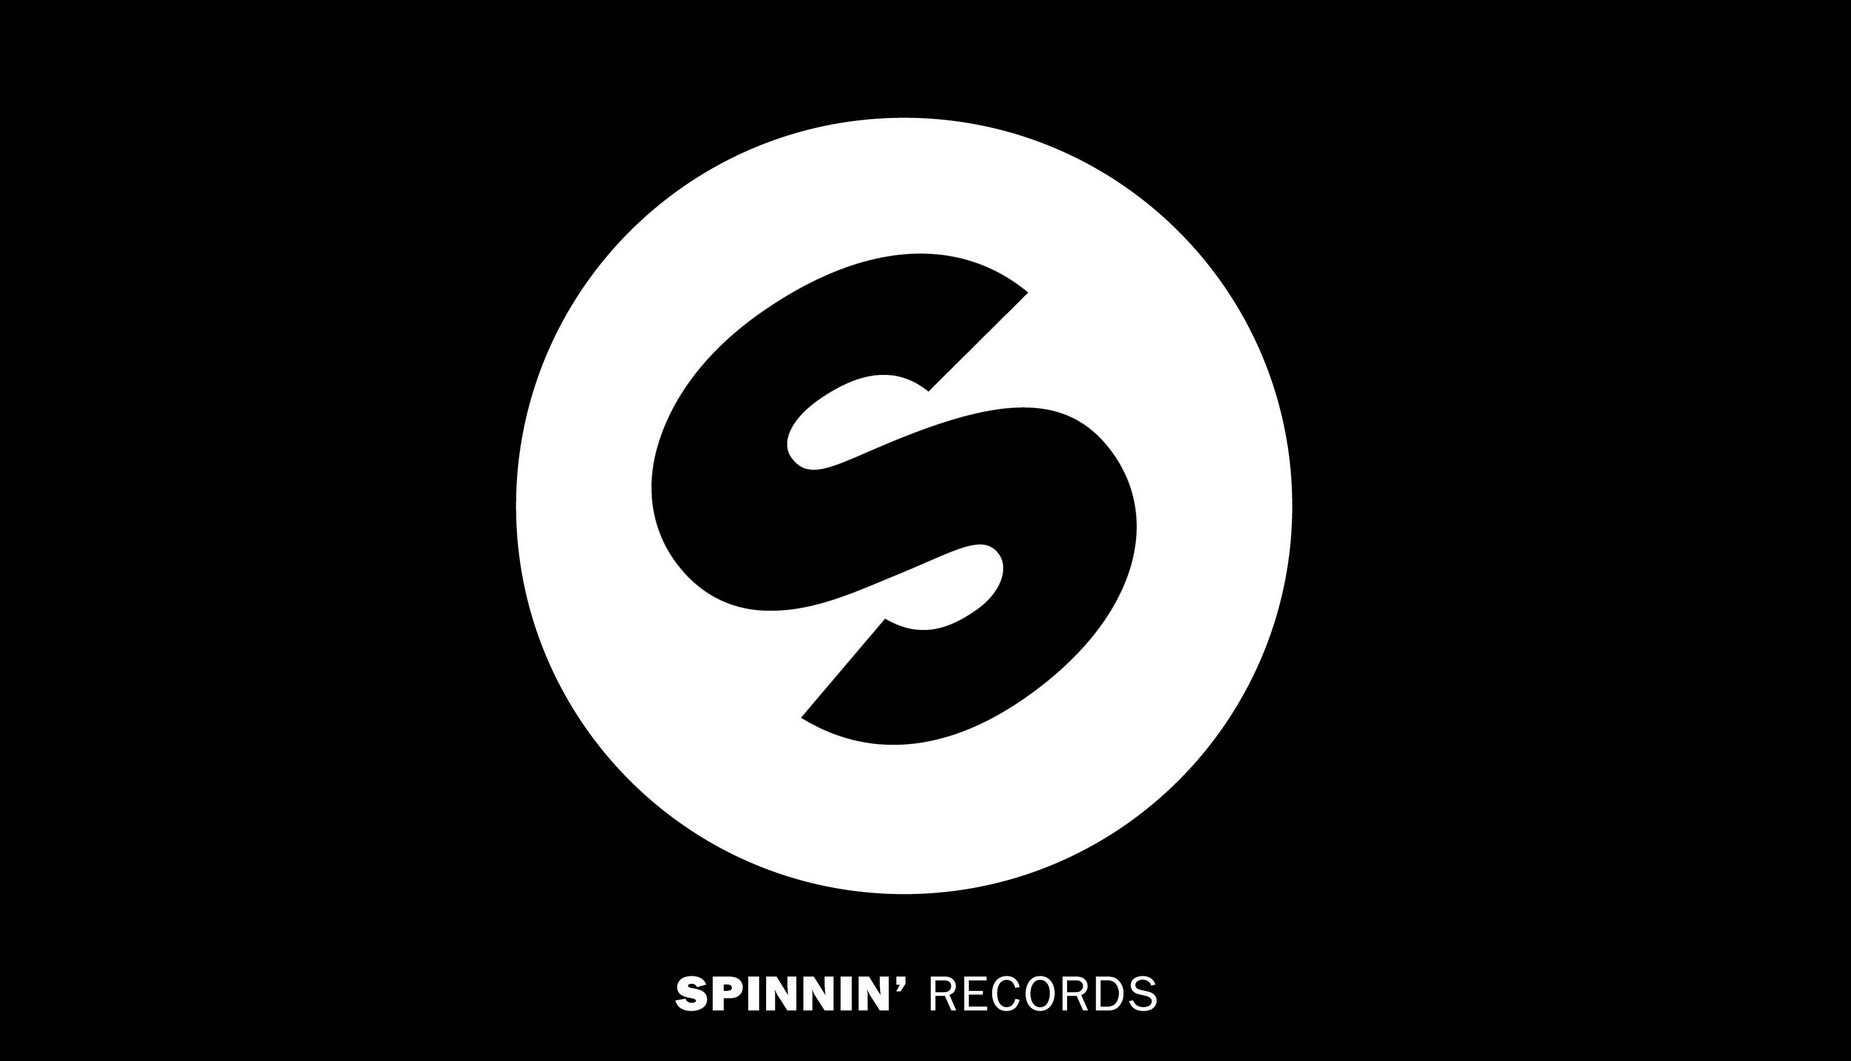 Cover image for Thoughts On WMG's Acquisition of Spinnin Records